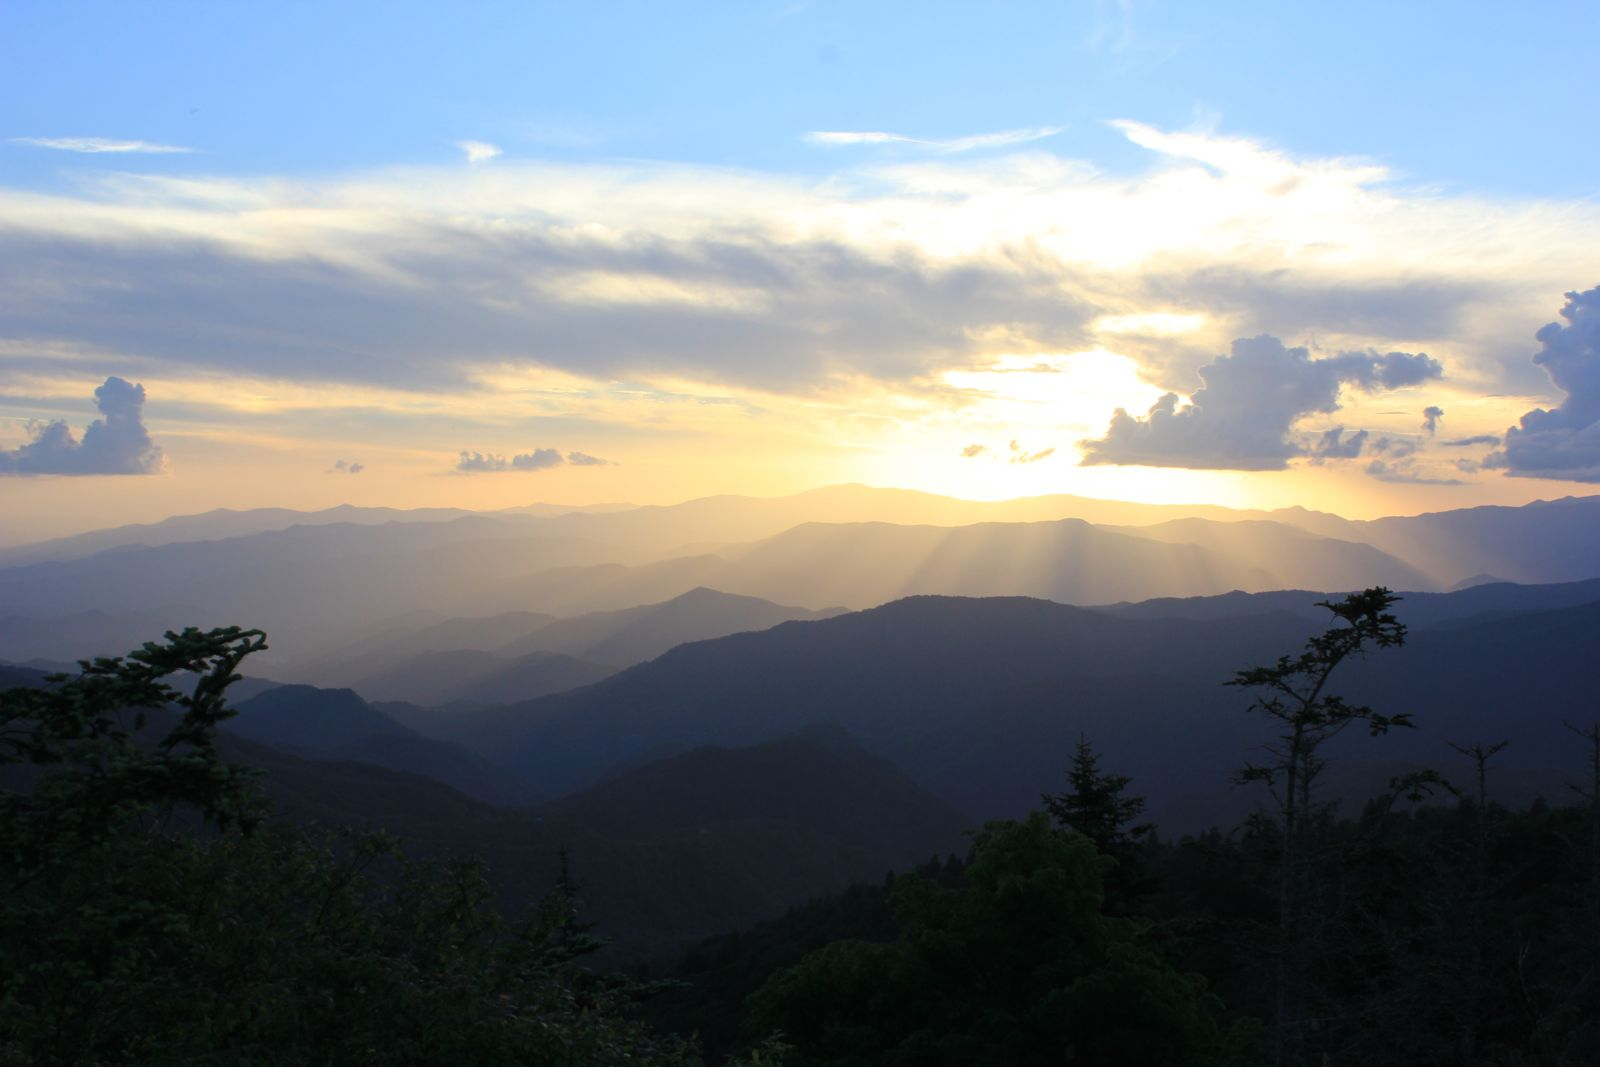 Sunset in Great Smoky Mountains National Park - photo by Jason Frye